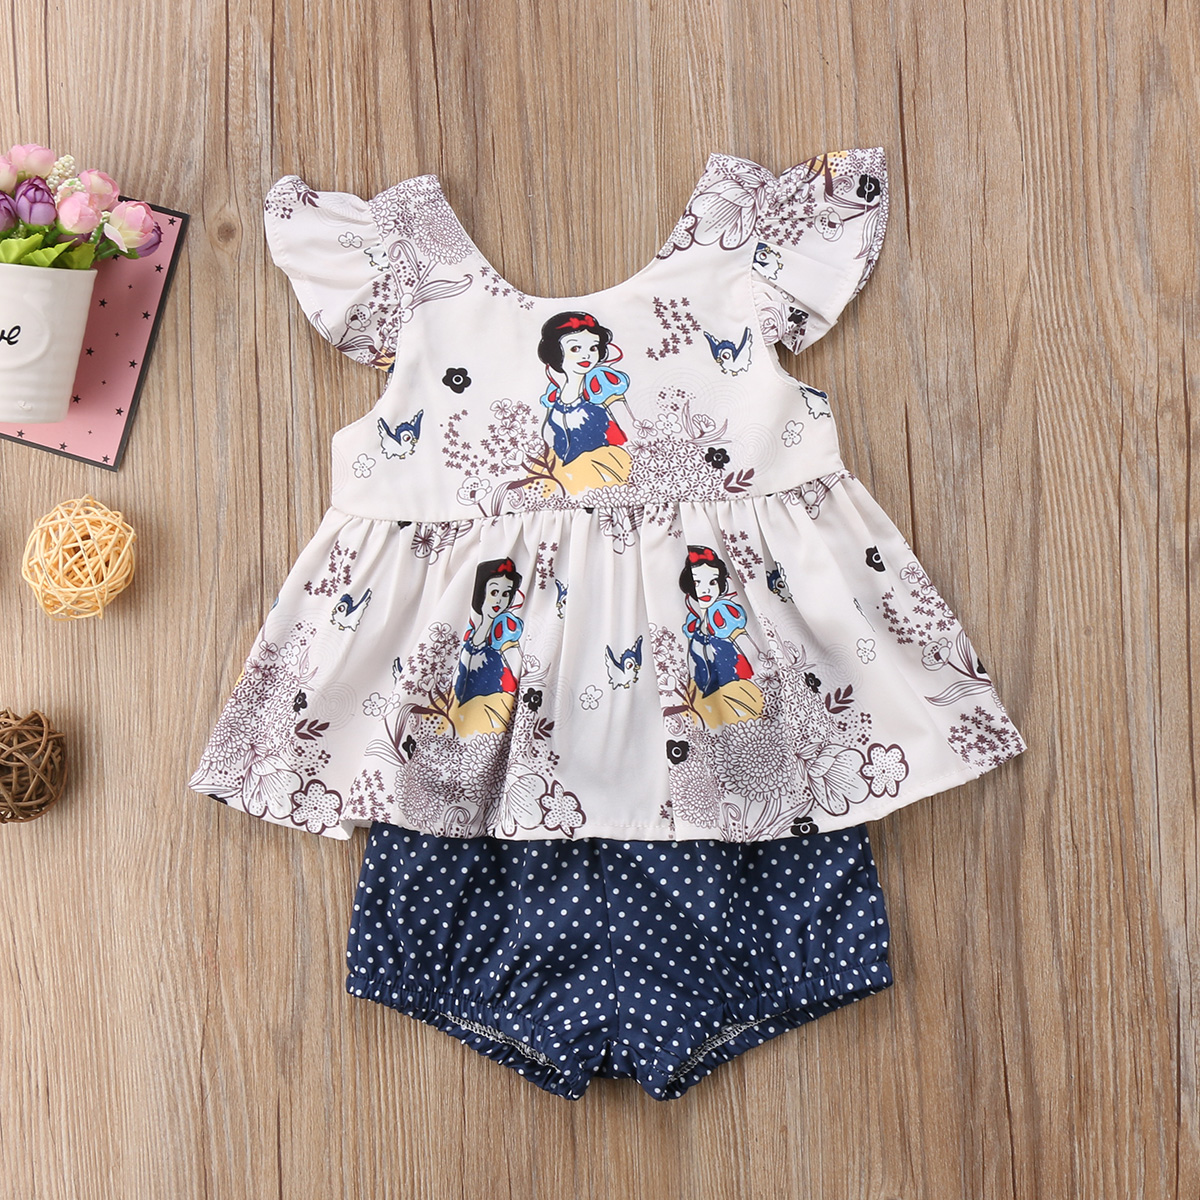 Canis Fashion Cute Newborn Baby Girls Clothes Pink Plaids Backless Tops Shirt Pants Briefs Outfits Clothes Set With A Long Standing Reputation Girls' Baby Clothing Mother & Kids